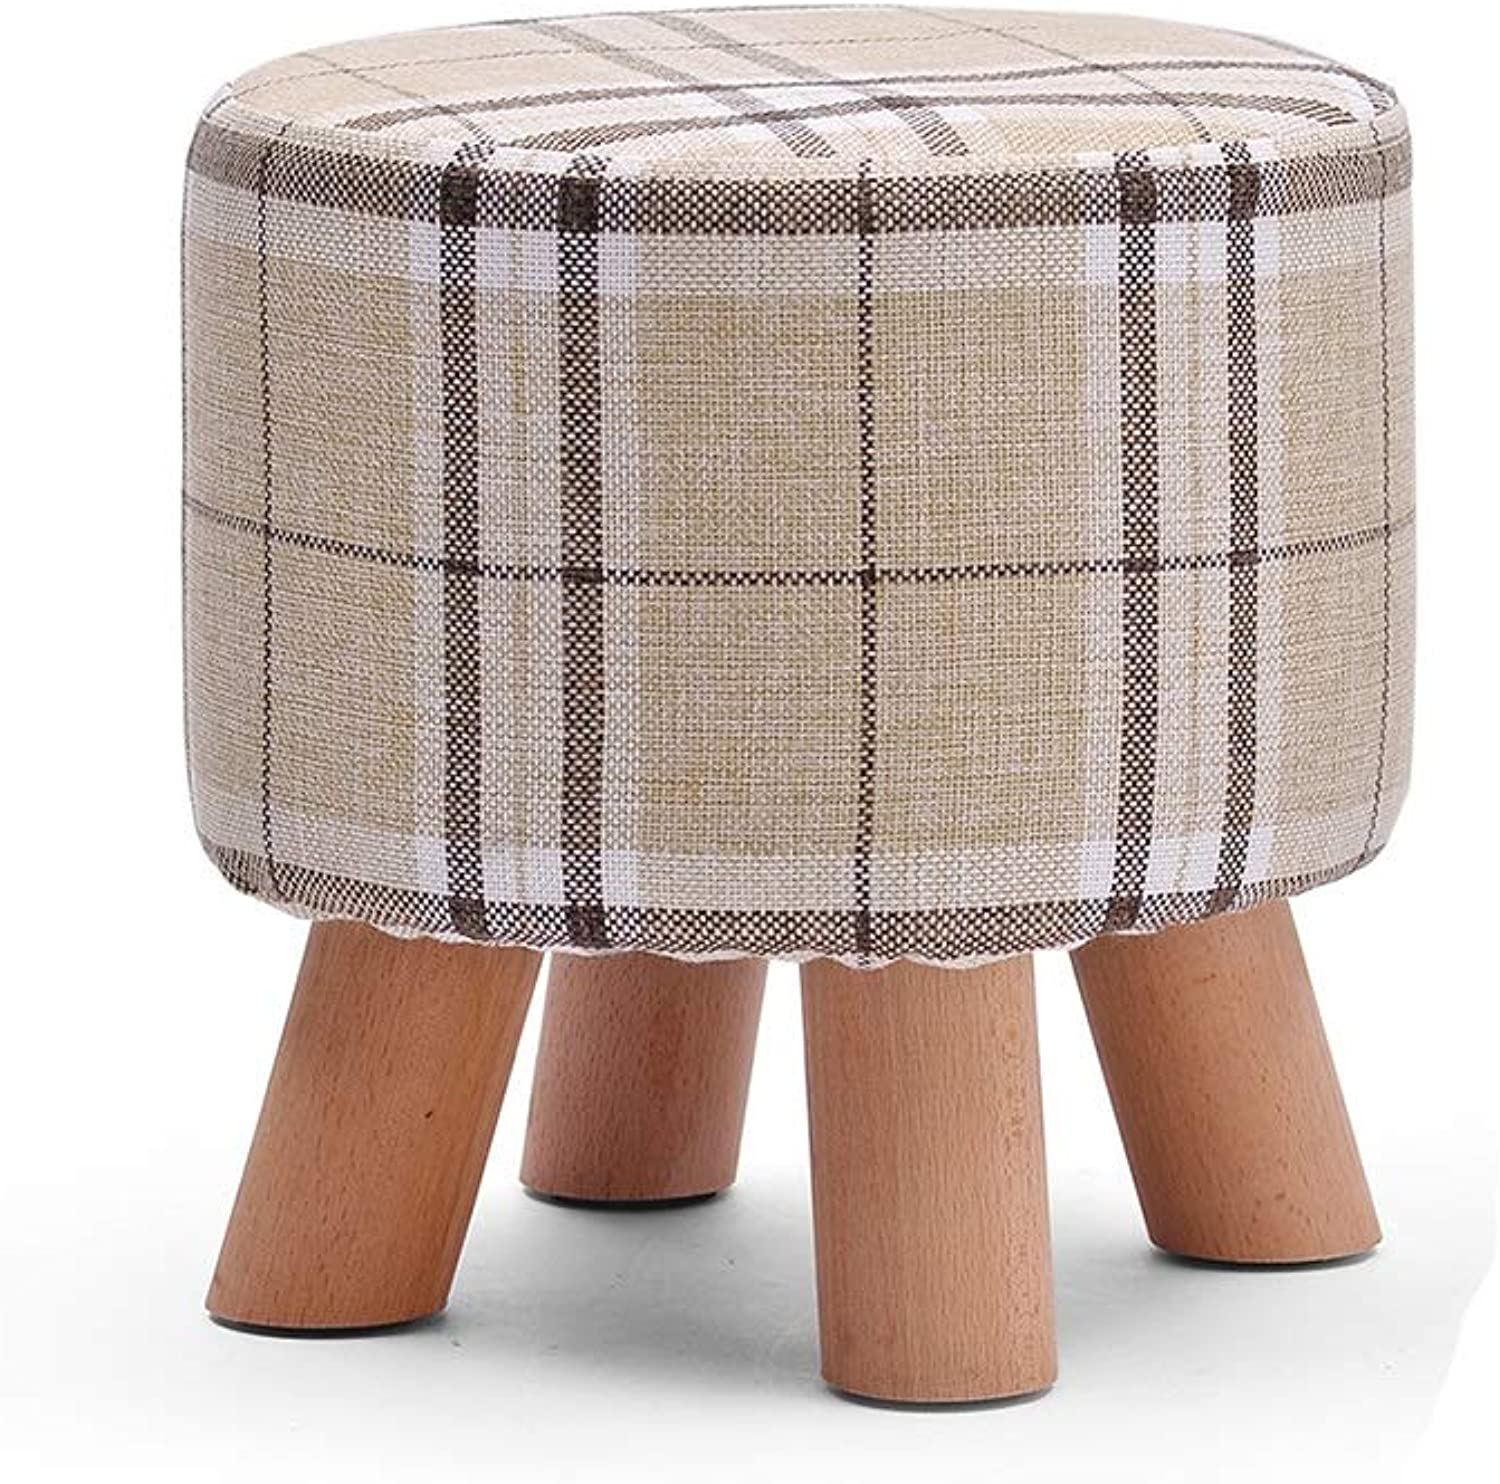 Footstool, Round Padded Wooden Leg Fabric Cotton Sofa Living Room Bedroom Home shoes Bench HPLL (color   6, Size   29  28cm)